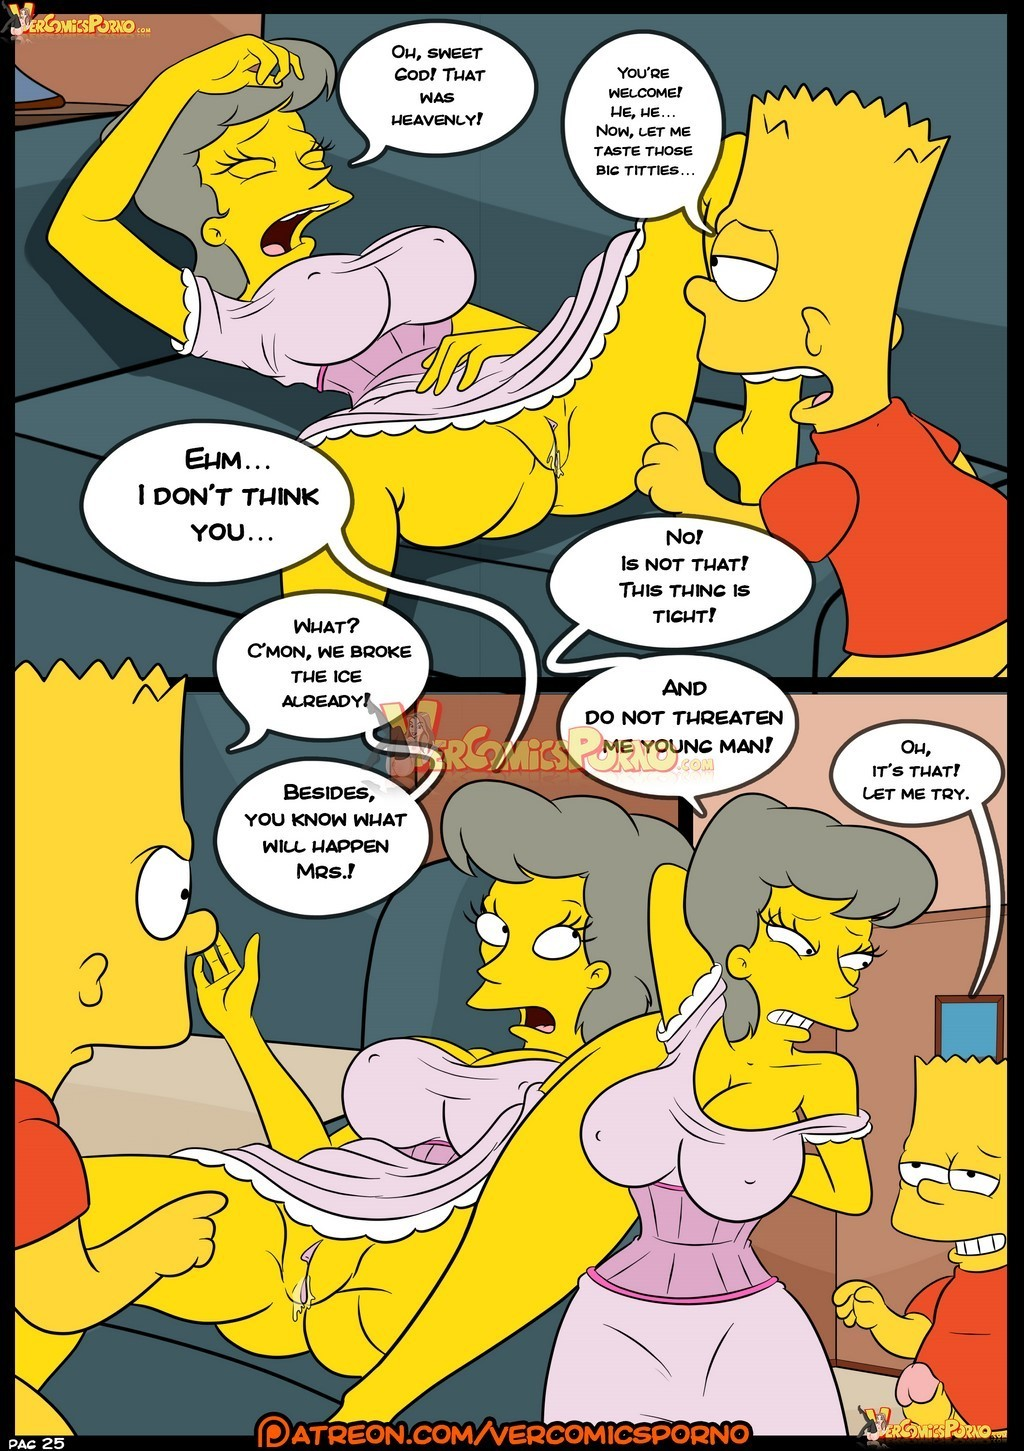 26 - The Simpsons. Part 8.